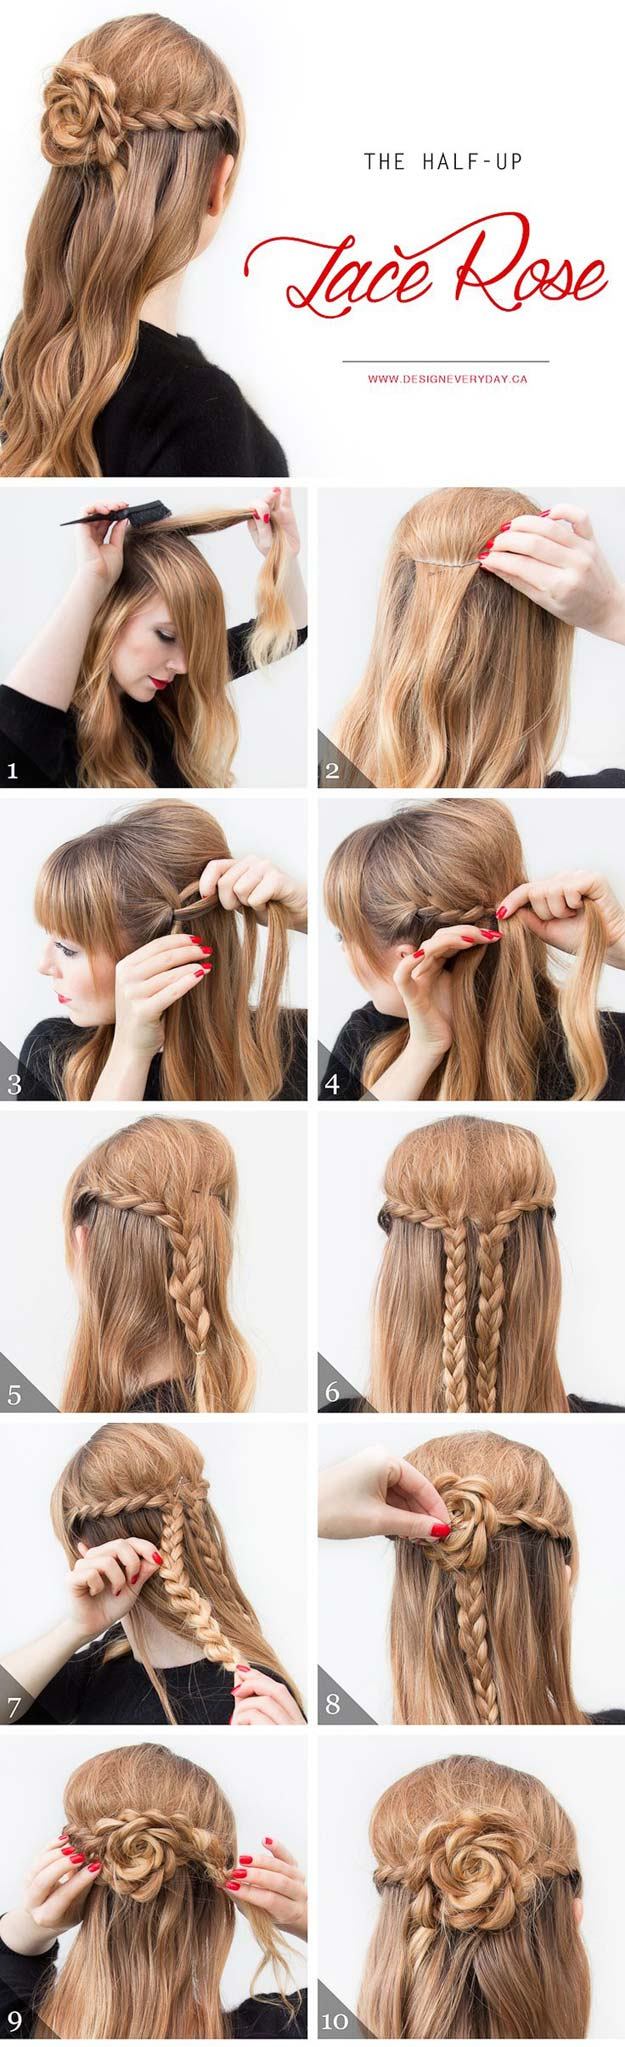 41 DIY Cool Easy Hairstyles That Real People Can Actually Do at ...